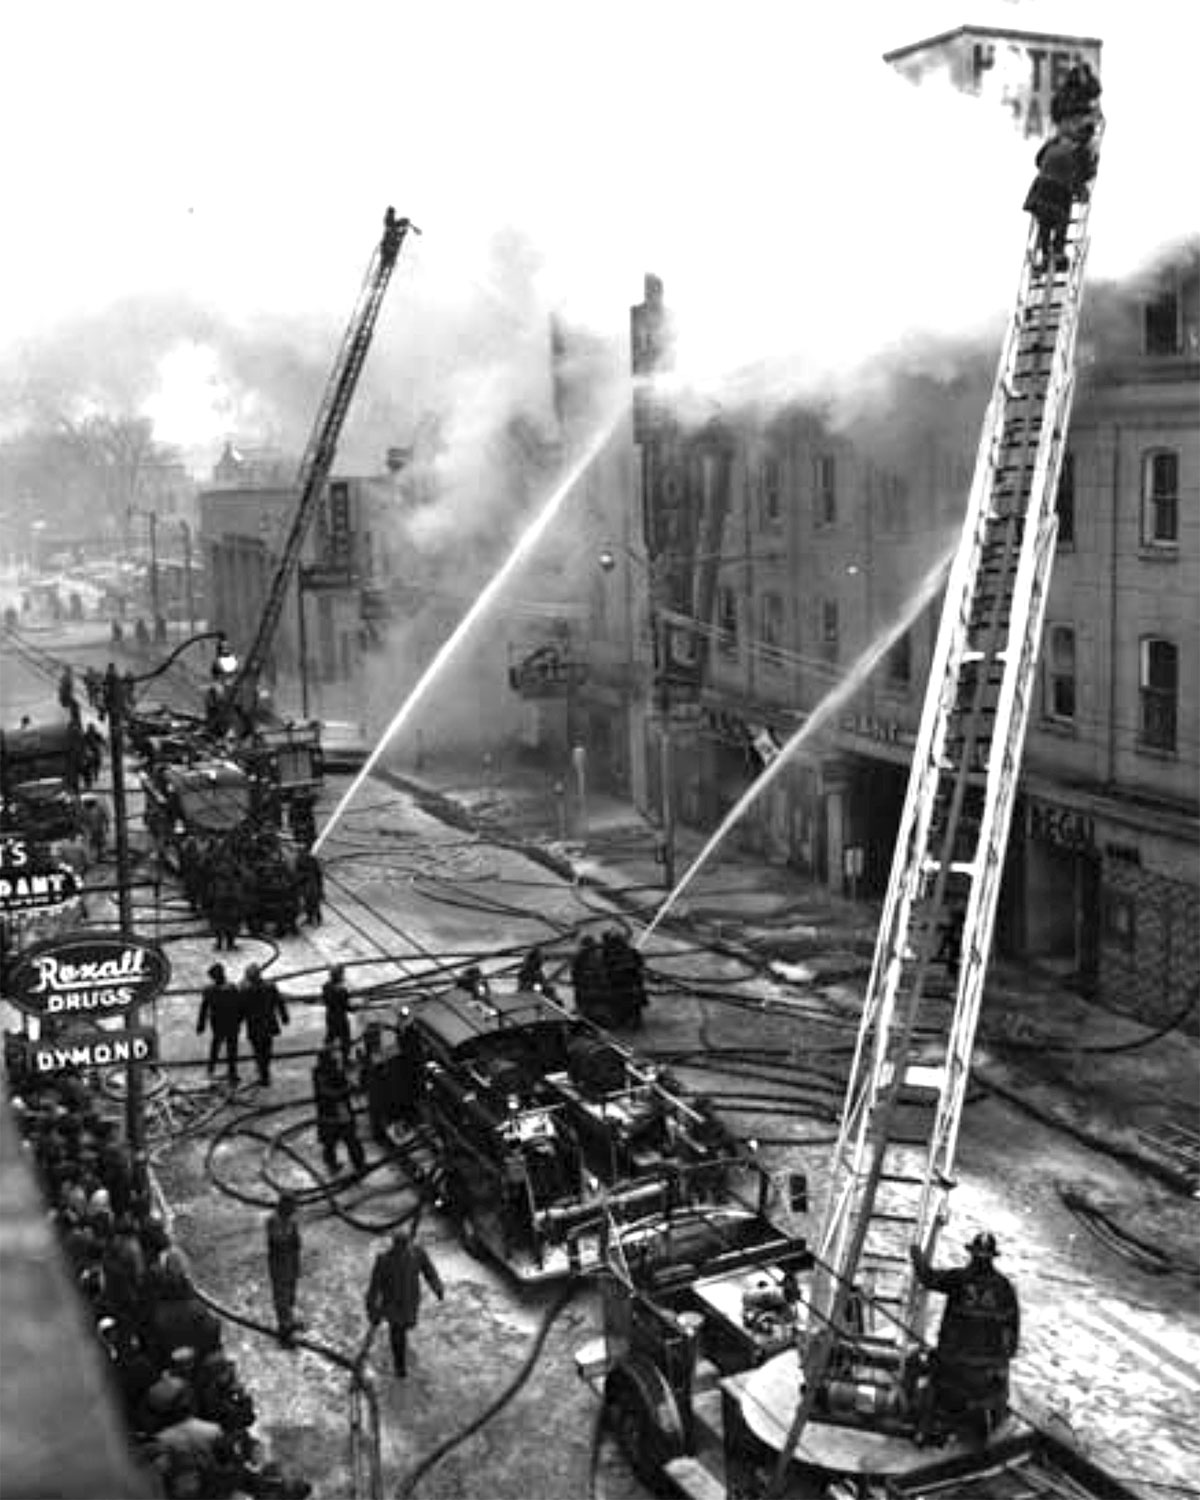 Brant Hotel Fire, 31-January-1962. Located at 85 Dalhousie Street, the hotel was built in 1858 and was called the American Hotel. It was renamed to the Brant Hotel in 1923. In 1960 a group of Toronto businessmen bought the hotel and made extensive renovations. The hotel had 80 rooms. The eastern portion of Harmony Square now occupies this location.   Image courtesy of the Brant Historical Society